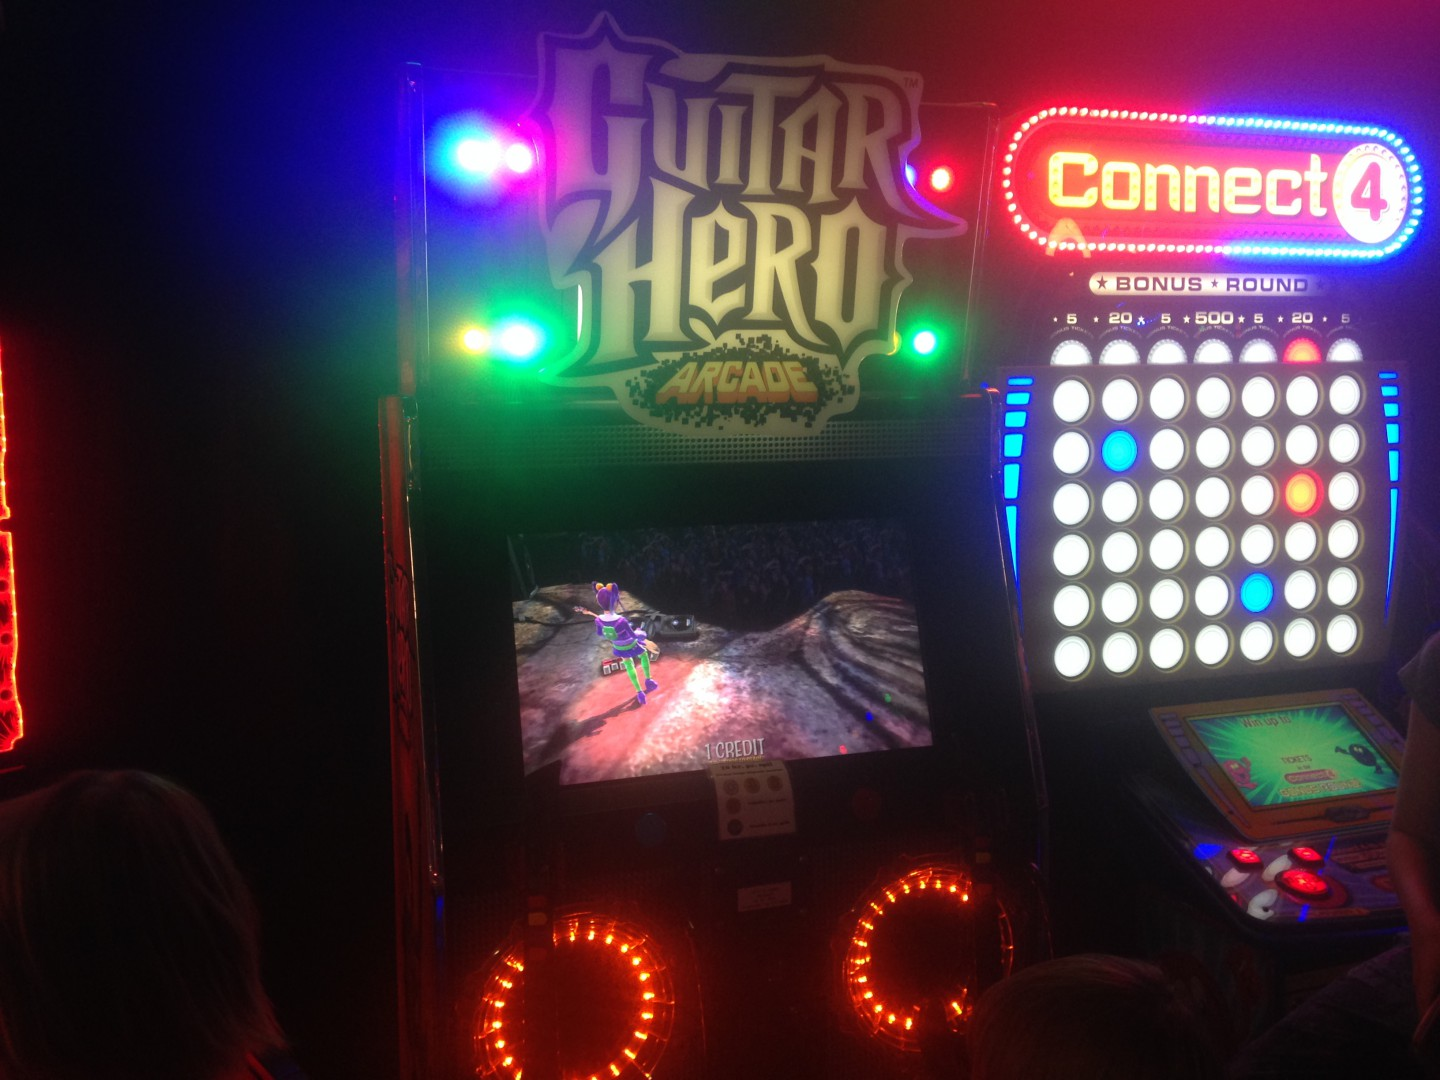 Guitar Hero Arcade, Intresting to see this one.